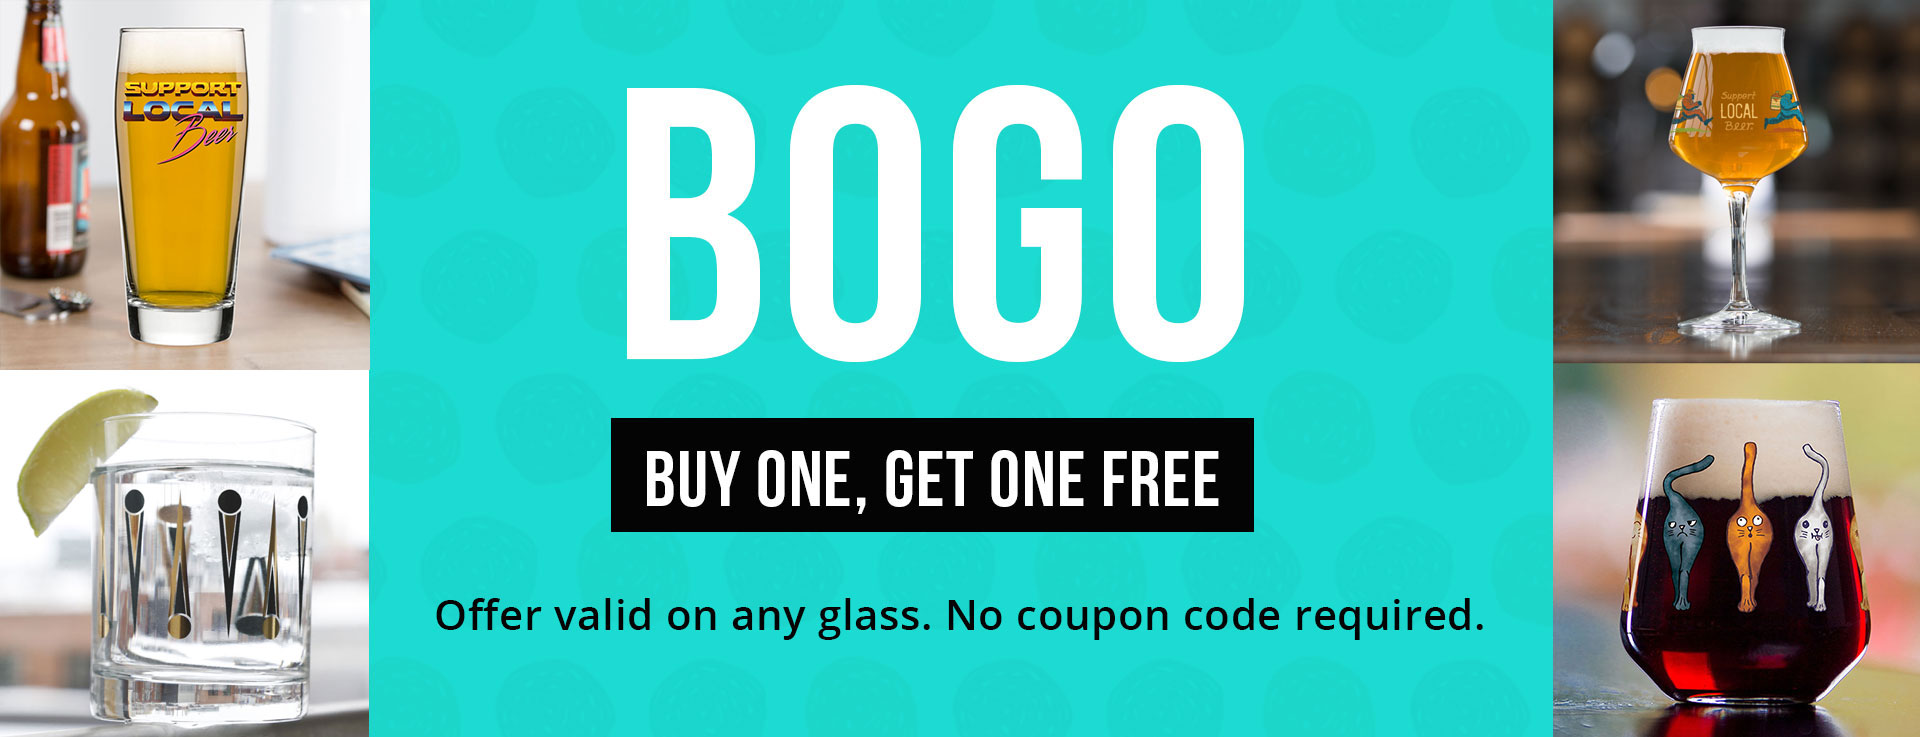 Buy One Get One Free Glassware